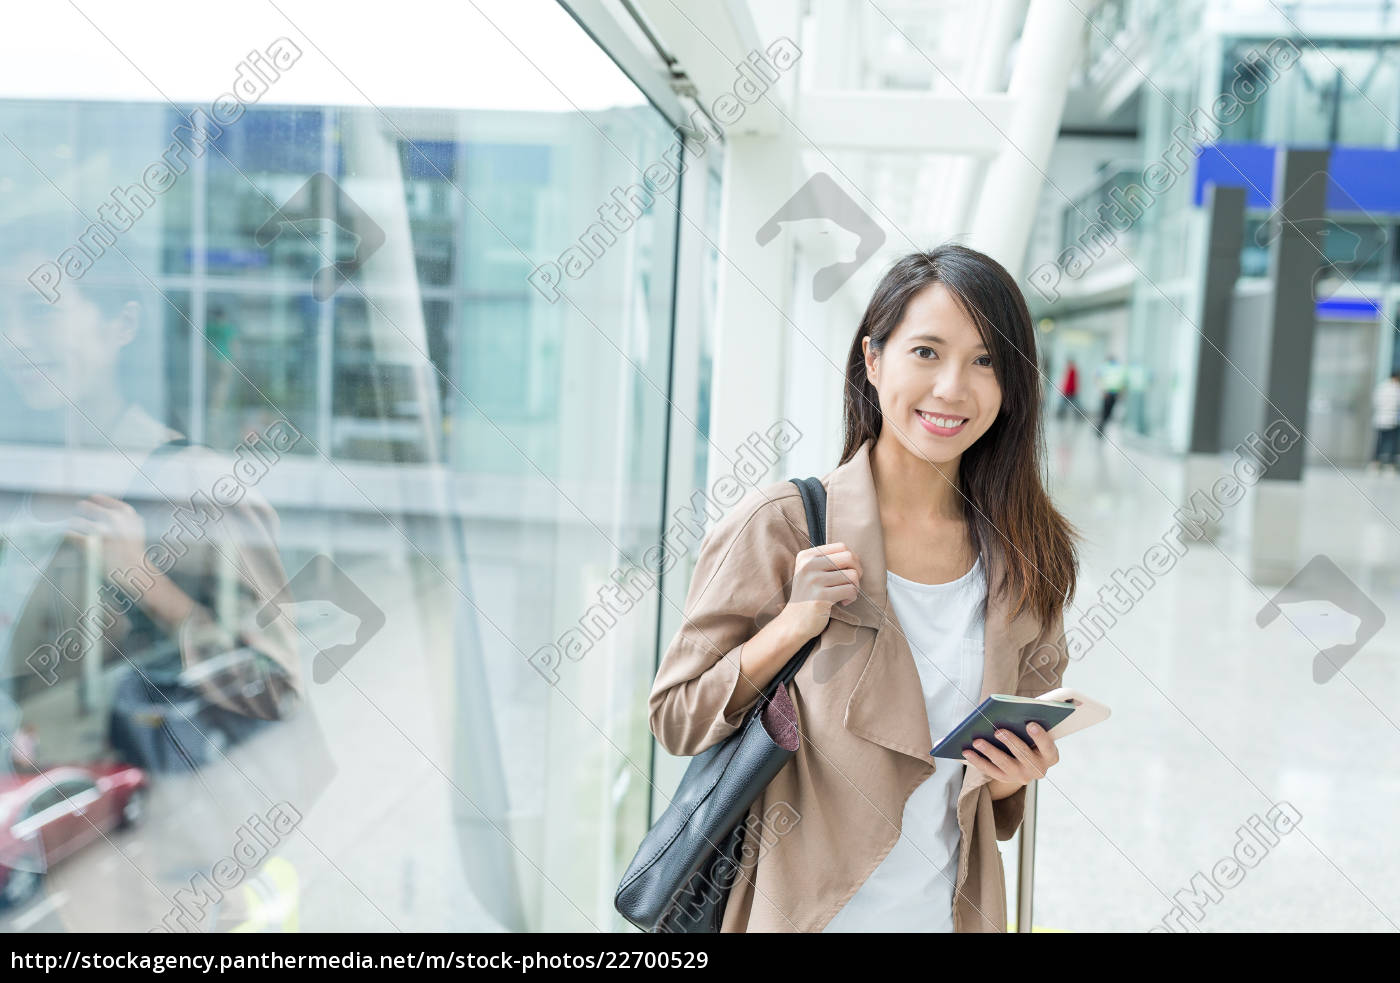 woman, holding, cellphone, and, passport, in - 22700529